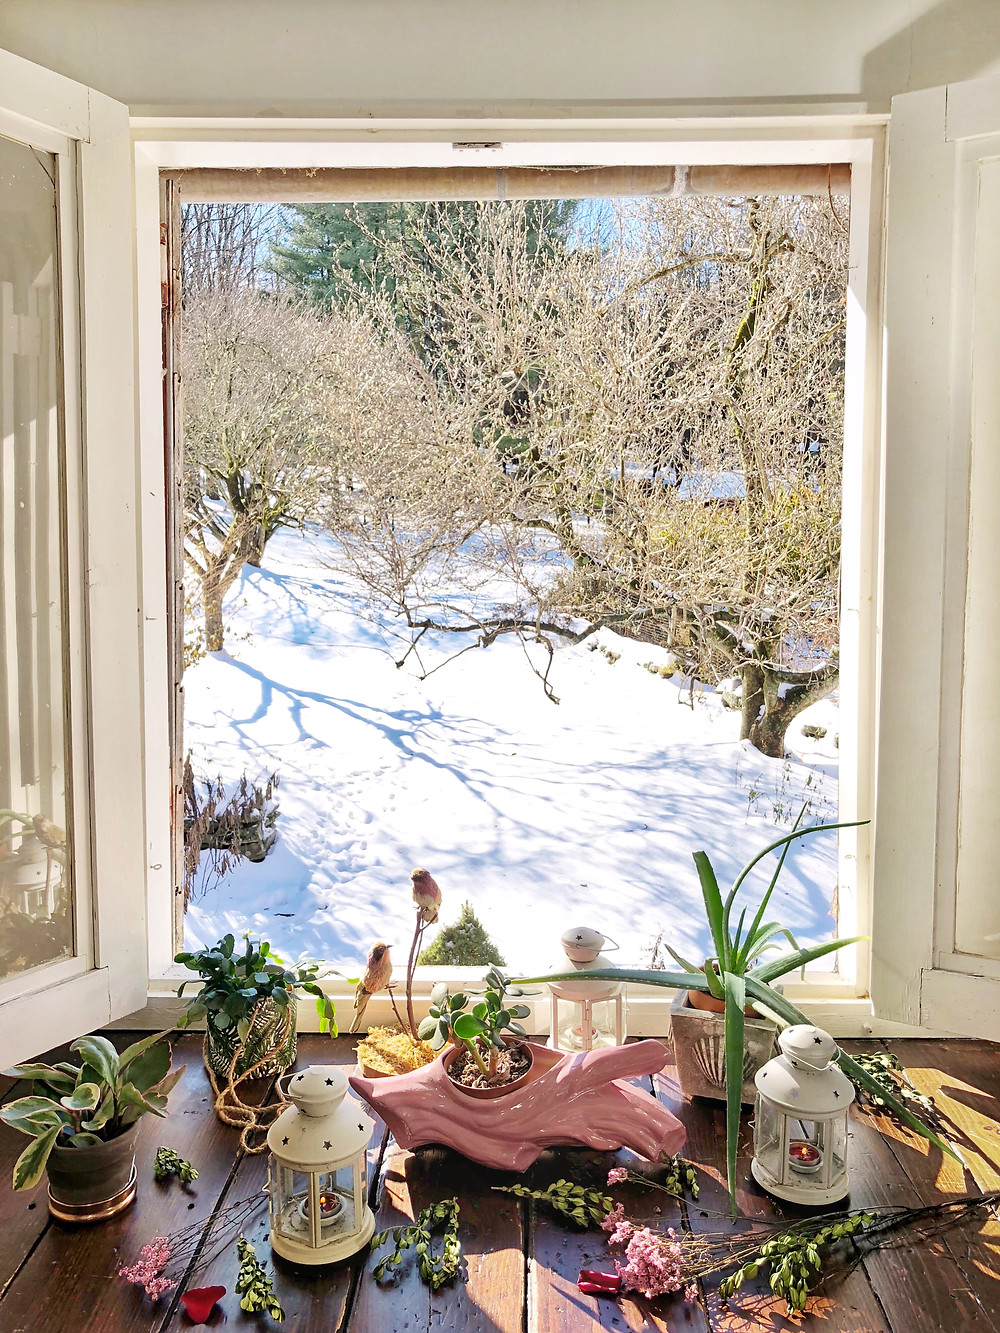 Hayloft window open with wood floors and plants. Snow on the ground outdoors